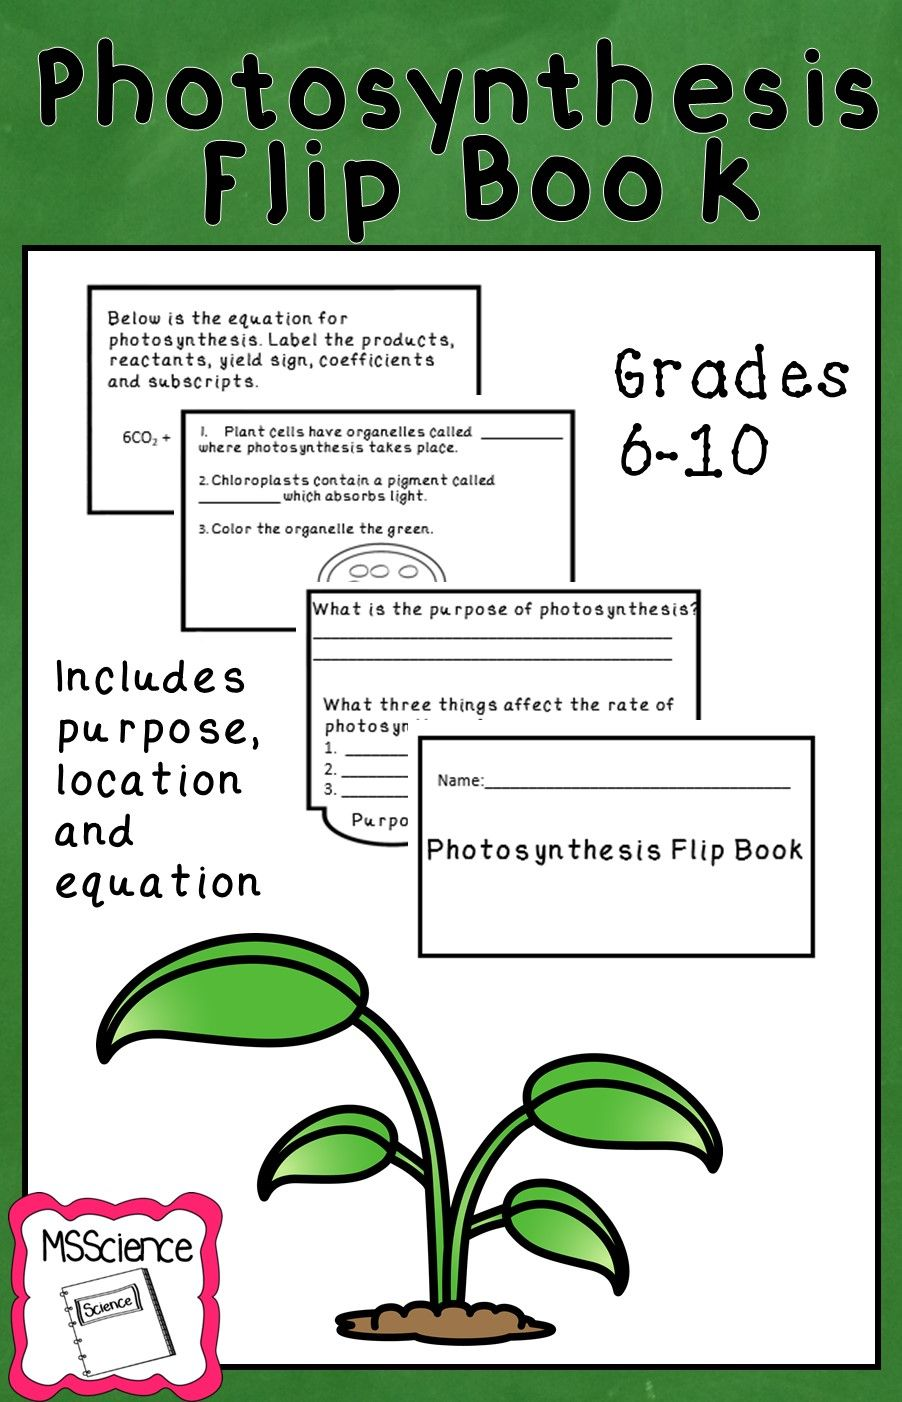 Photosynthesis Flip Book (With images) | Flip book, High ...